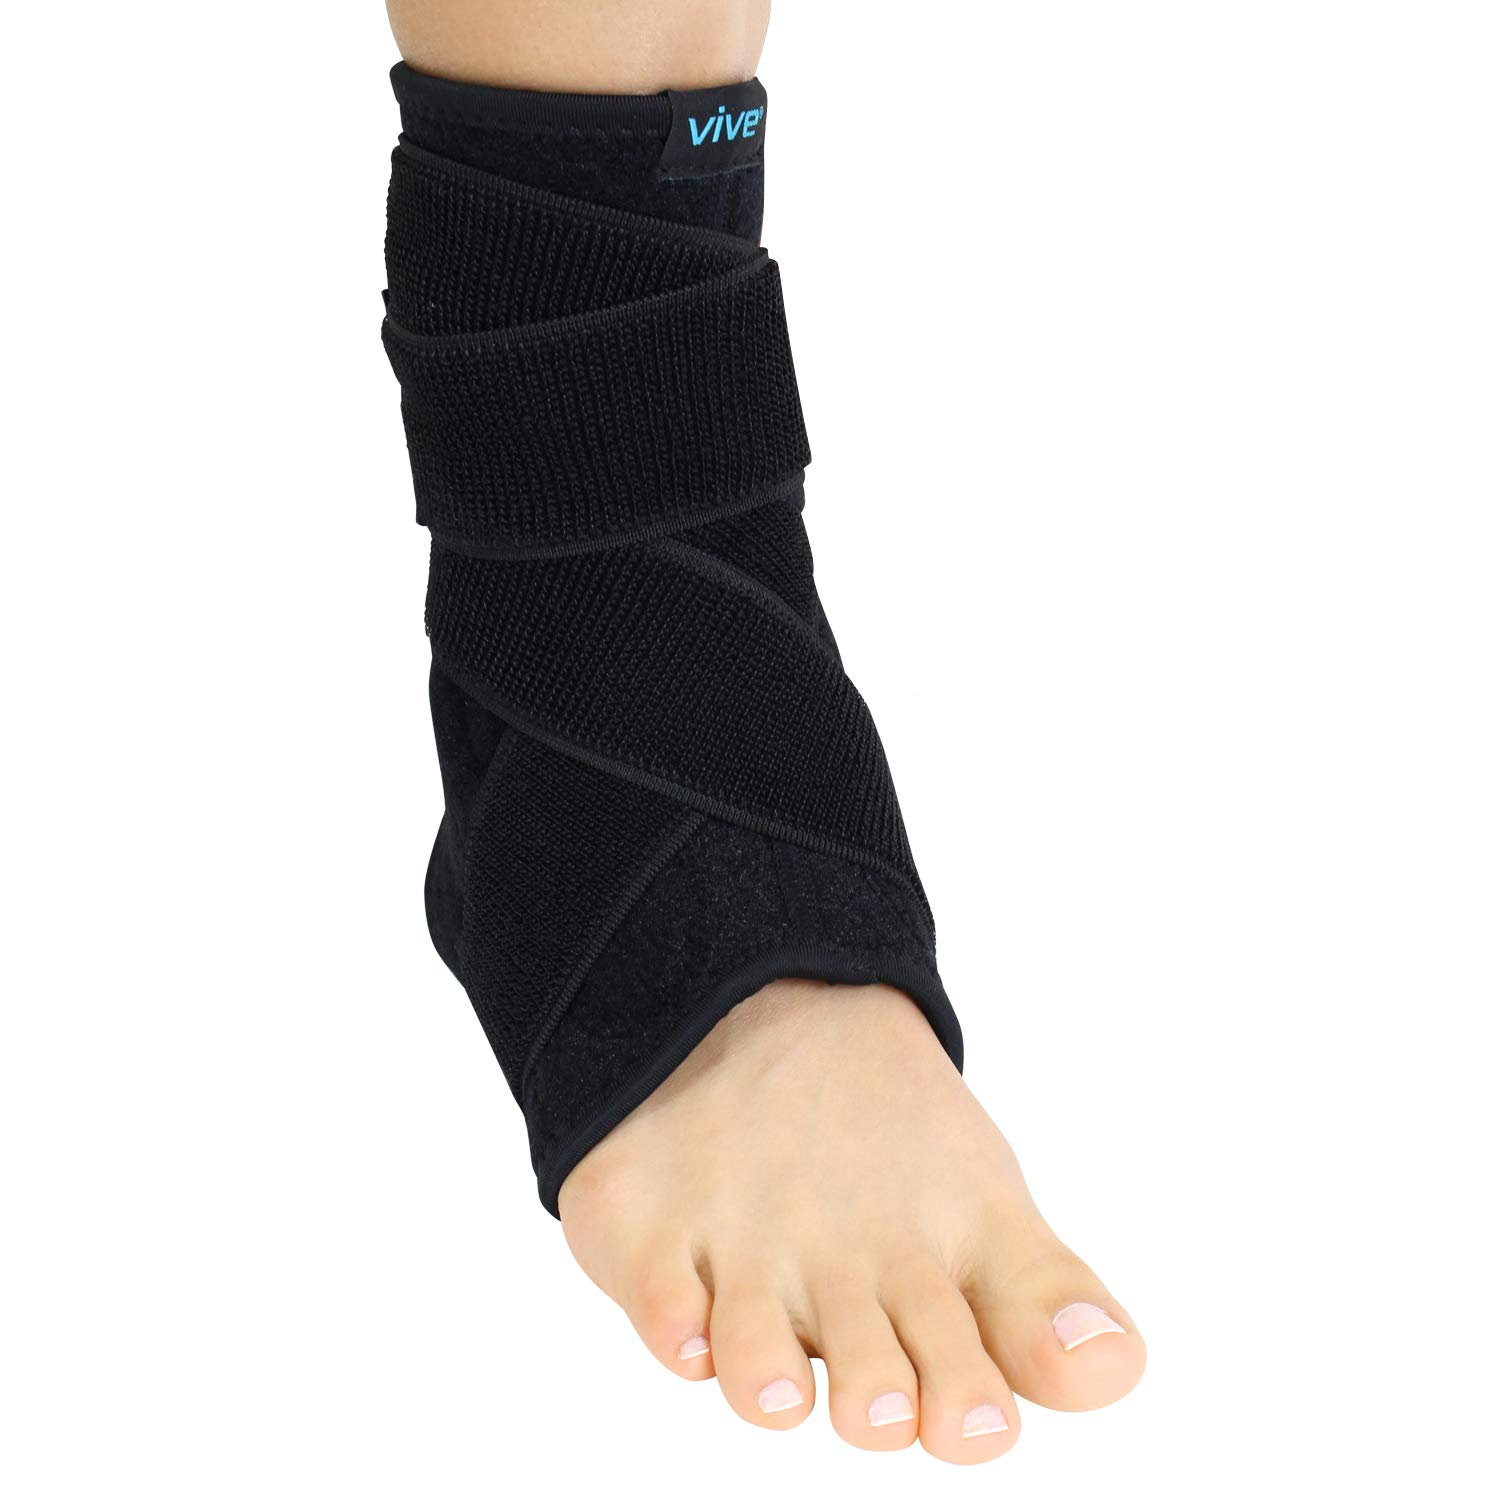 Vive Sprained Ankle Brace for Women, Men - Right or Left Compression Foot Immobilizer Support - Basketball, Volleyball Neoprene Stabilizer Wrap Protector - Tendonitis, Heel Spur, Running Feet Sprain by Vive